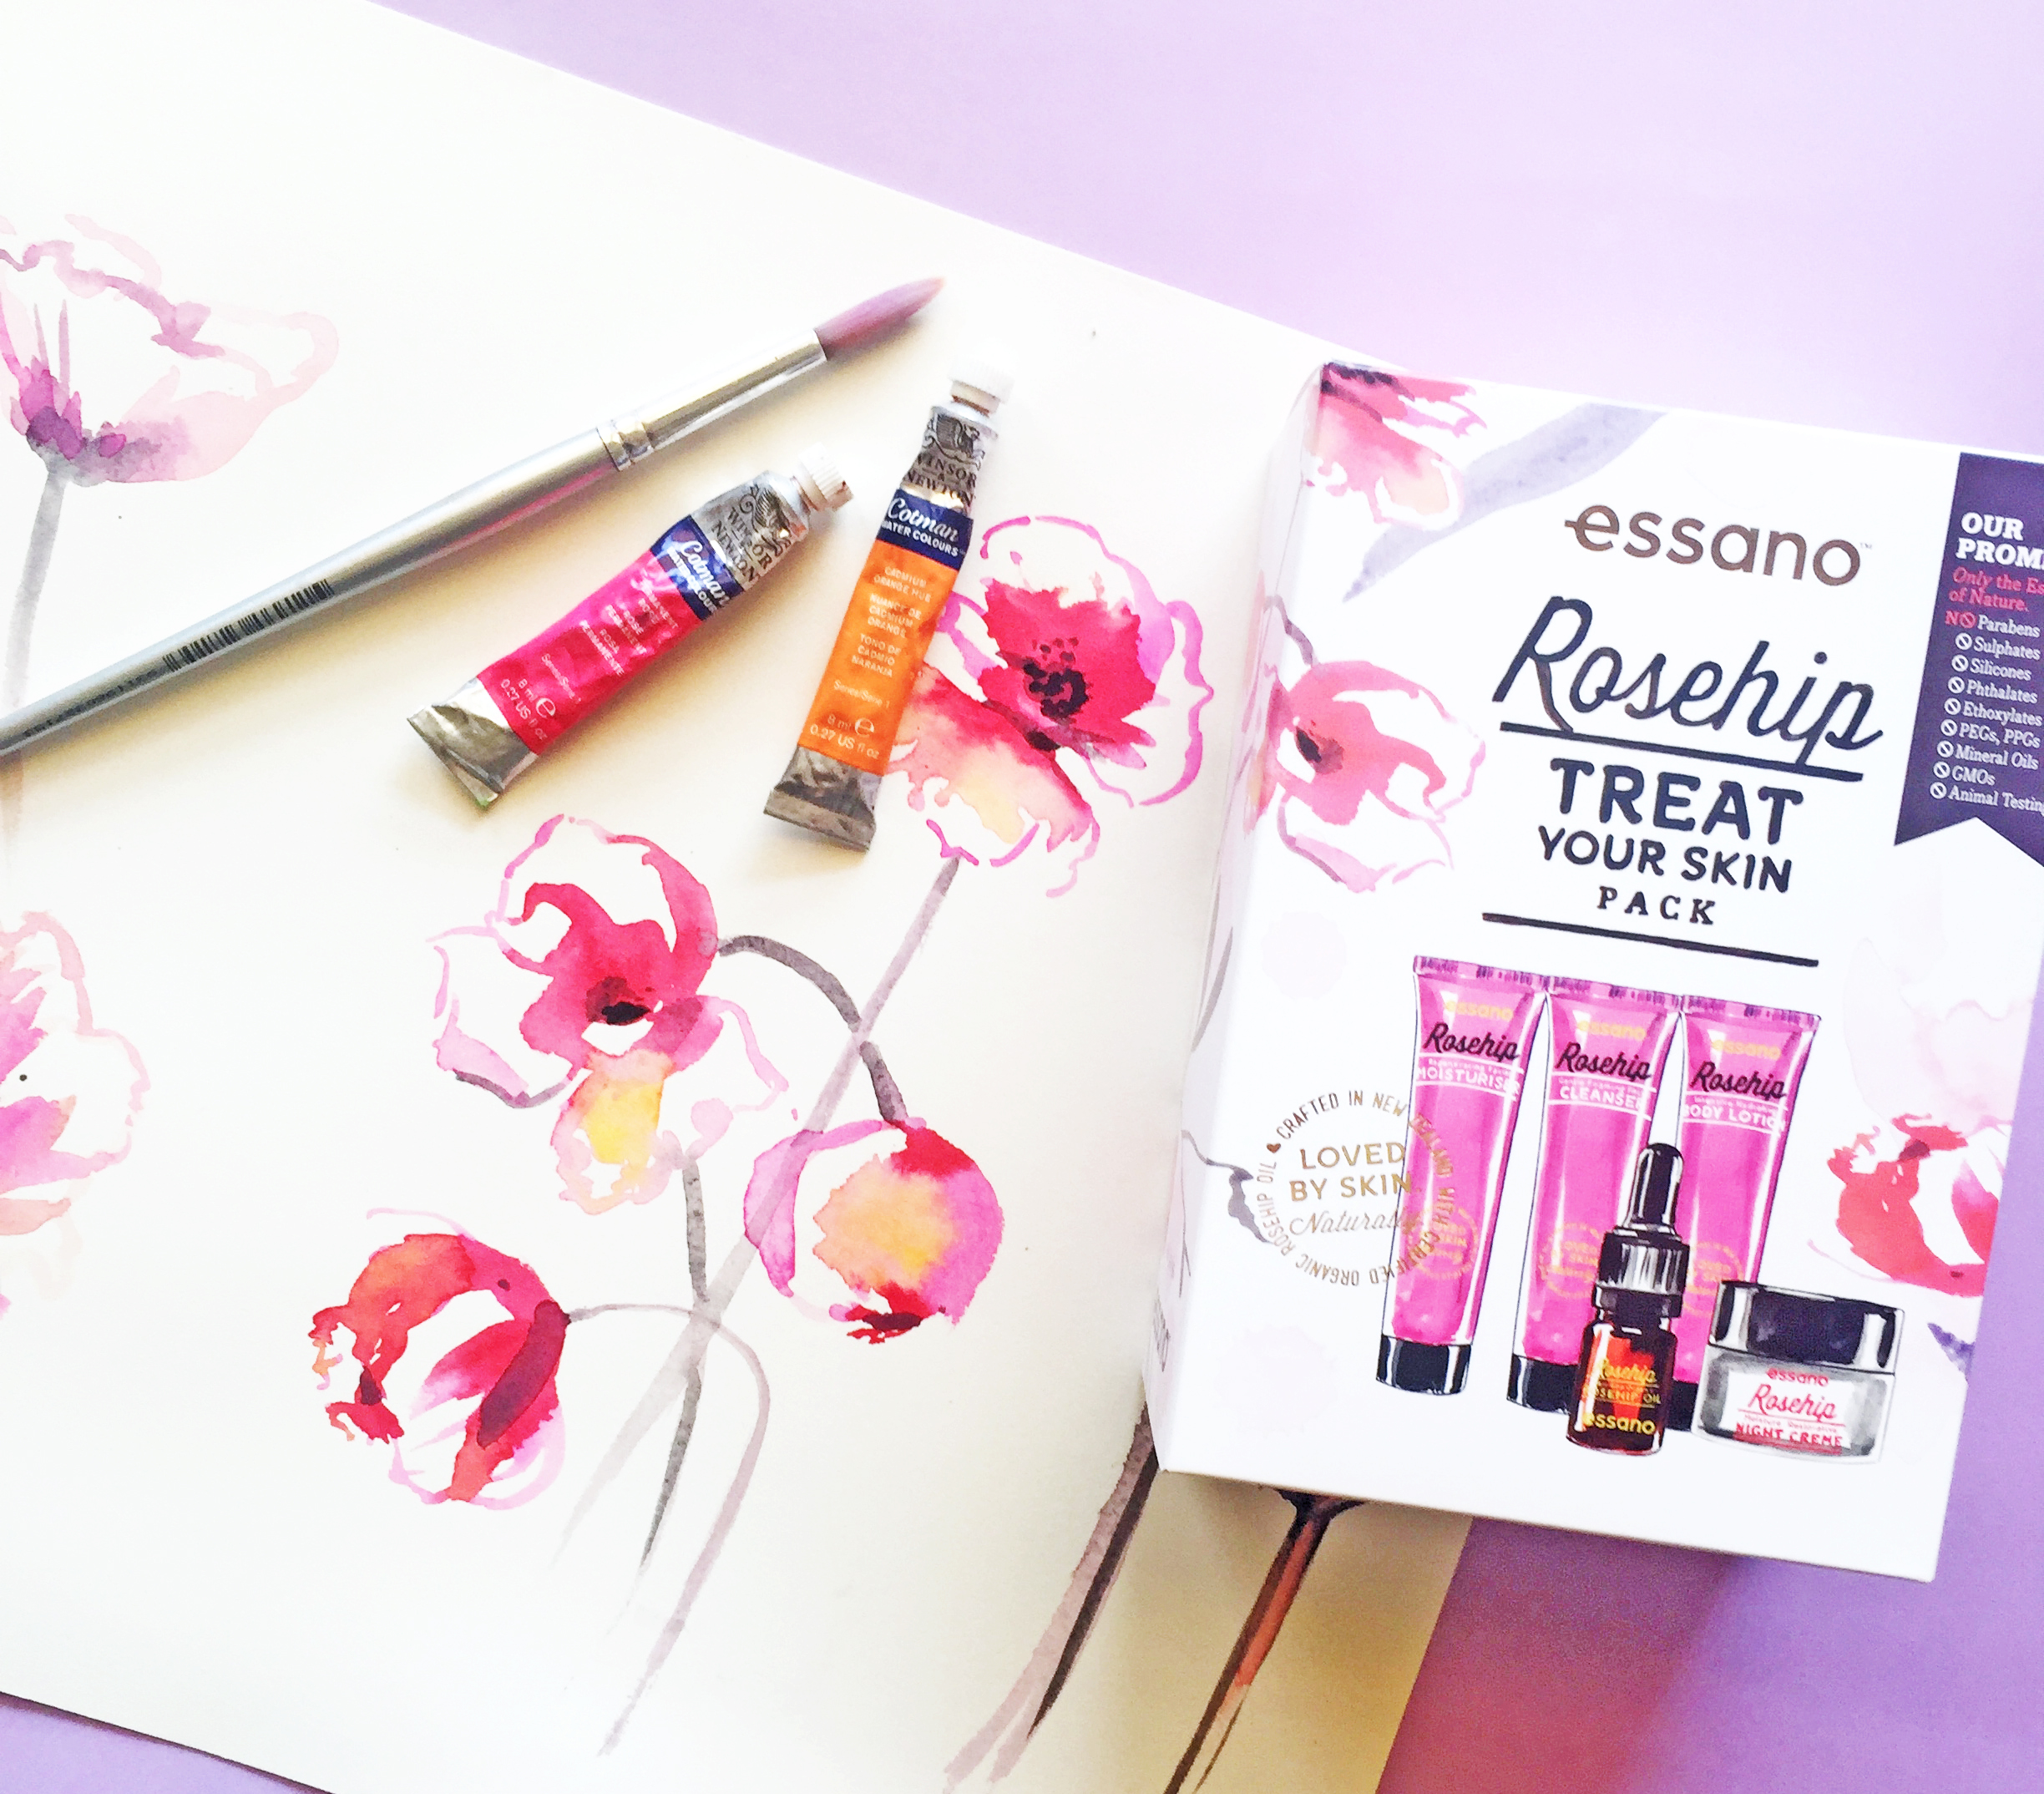 Essano Rosehip Treat Your Skin Pack